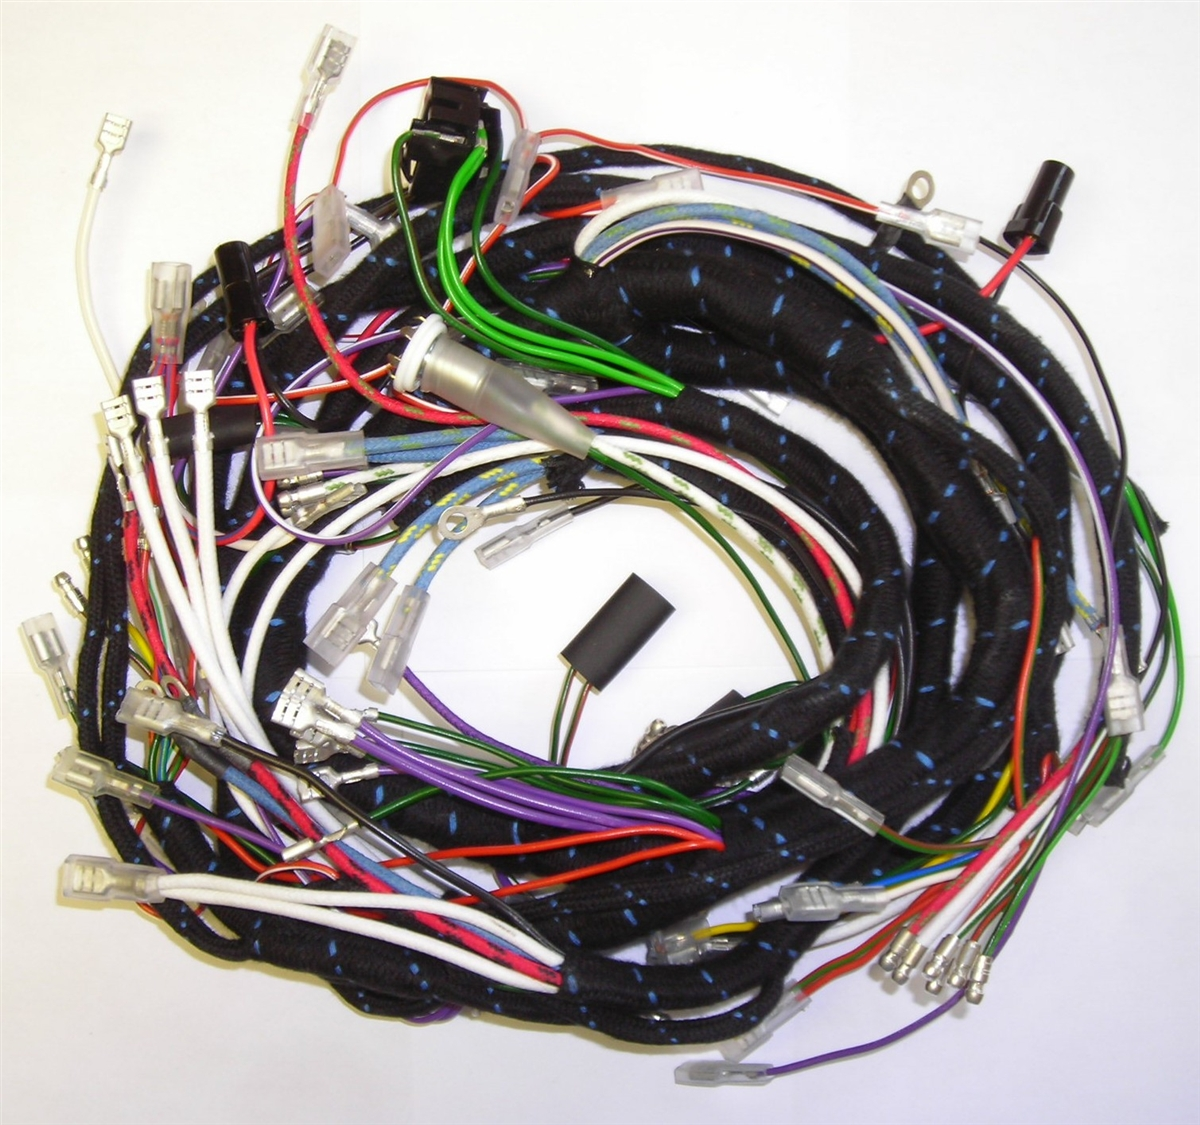 dash wiring harness for 3 8 liter jaguar xke